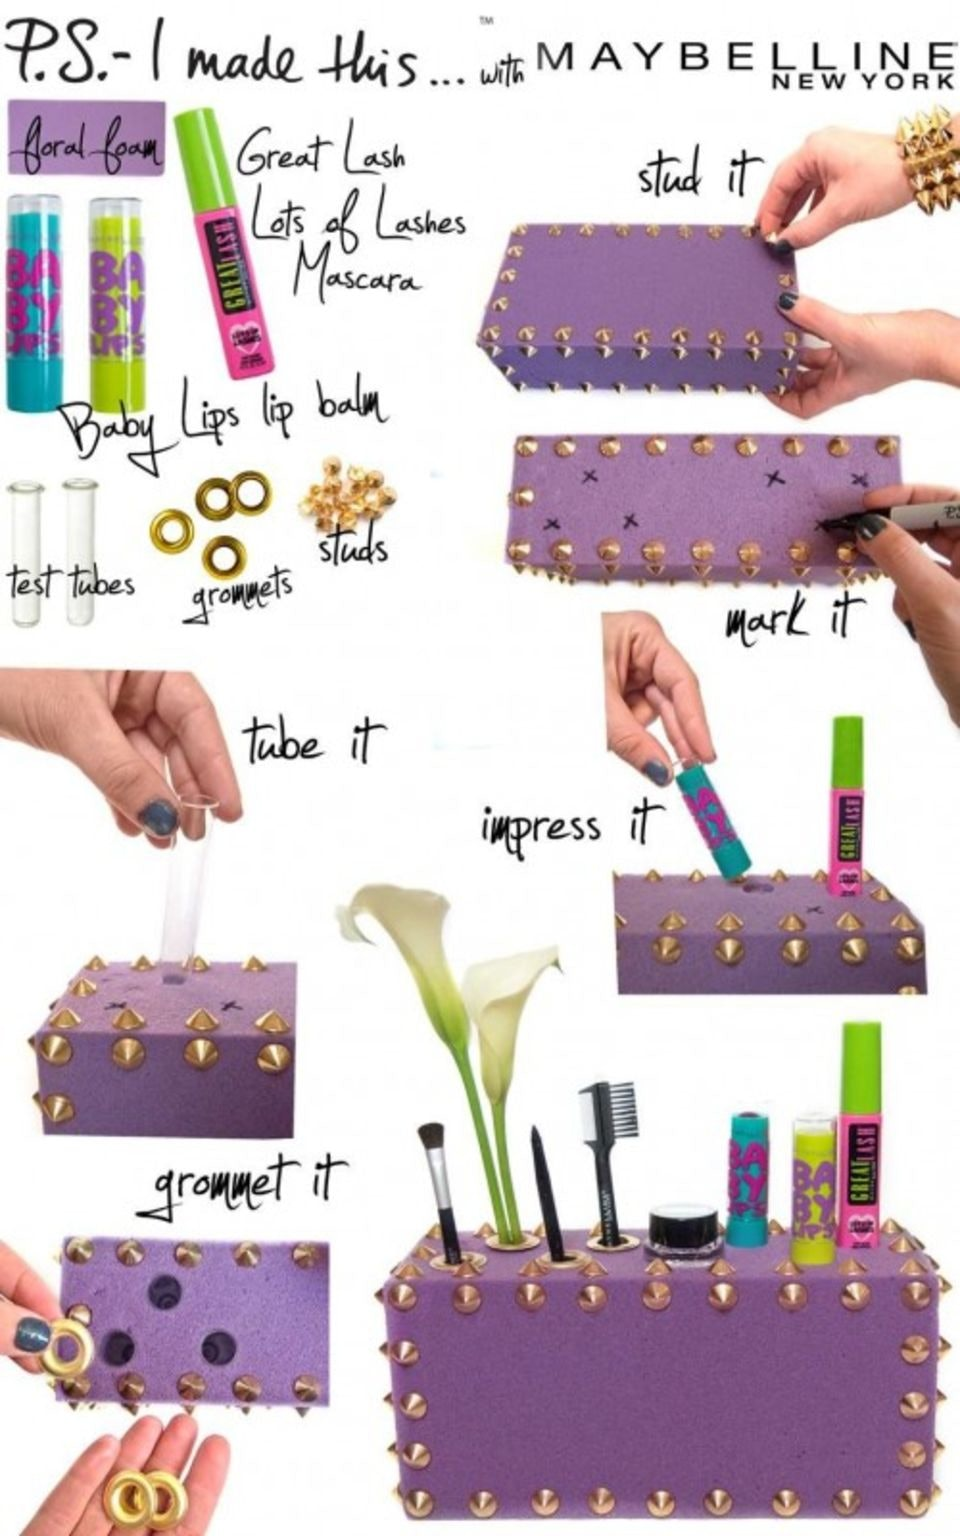 14 DIY Makeup Organizer Ideas That Are So Much Prettier Than Those Stacks Of Plastic Boxes  sc 1 st  Bustle & 14 DIY Makeup Organizer Ideas That Are So Much Prettier Than Those ...